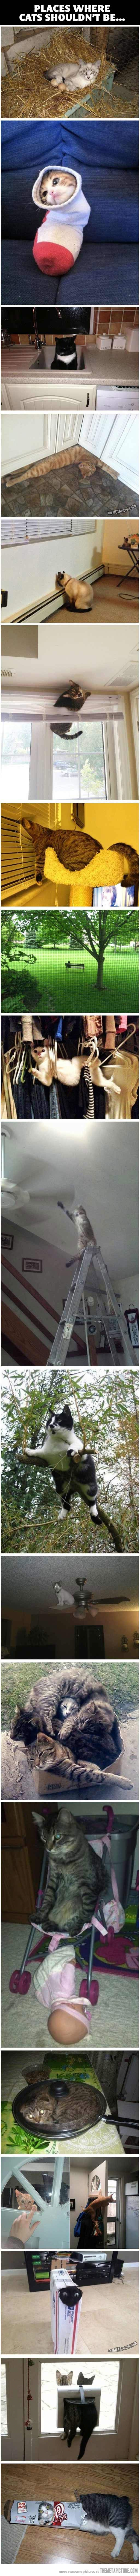 Places cats shouldn't be…